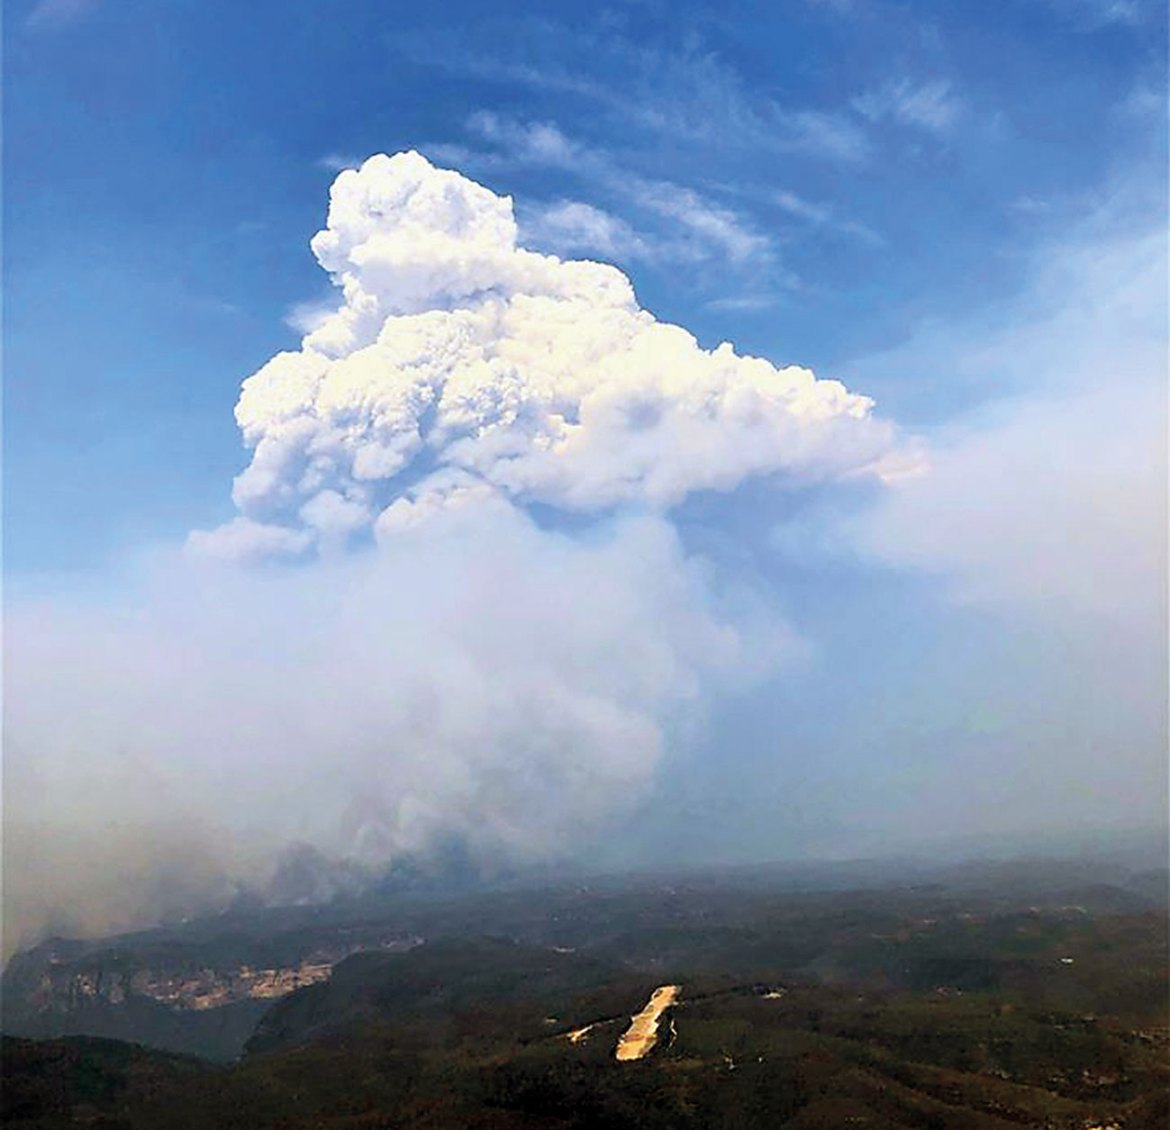 A pyrocumulonimbus cloud forms above the Gospers Mountain fire in NSW during the 2019/20 fire season.